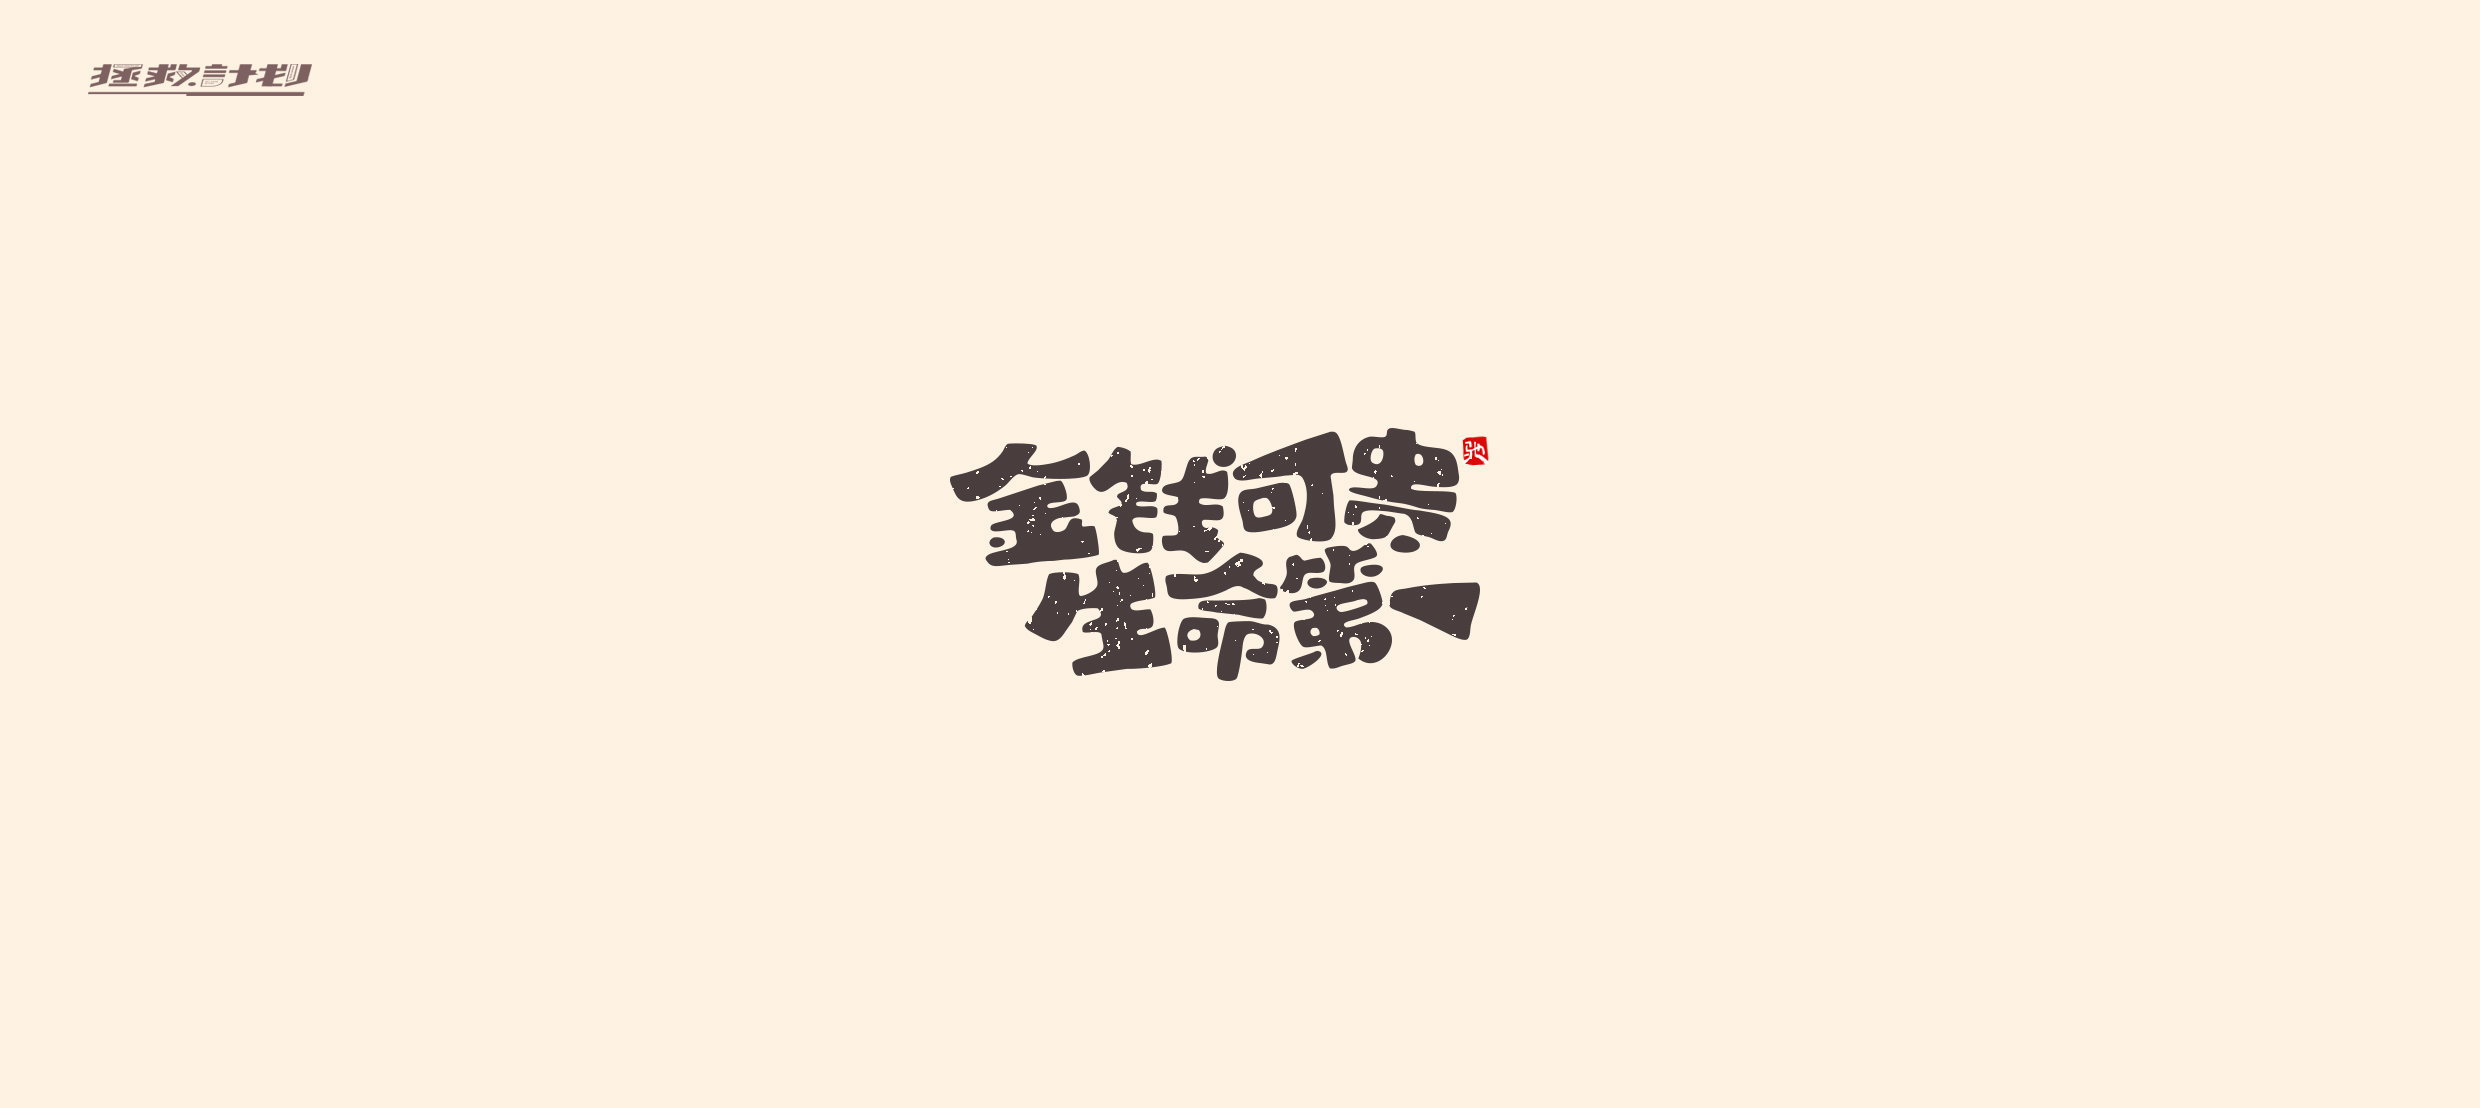 26P Collection of the latest Chinese font design schemes in 2021 #.13